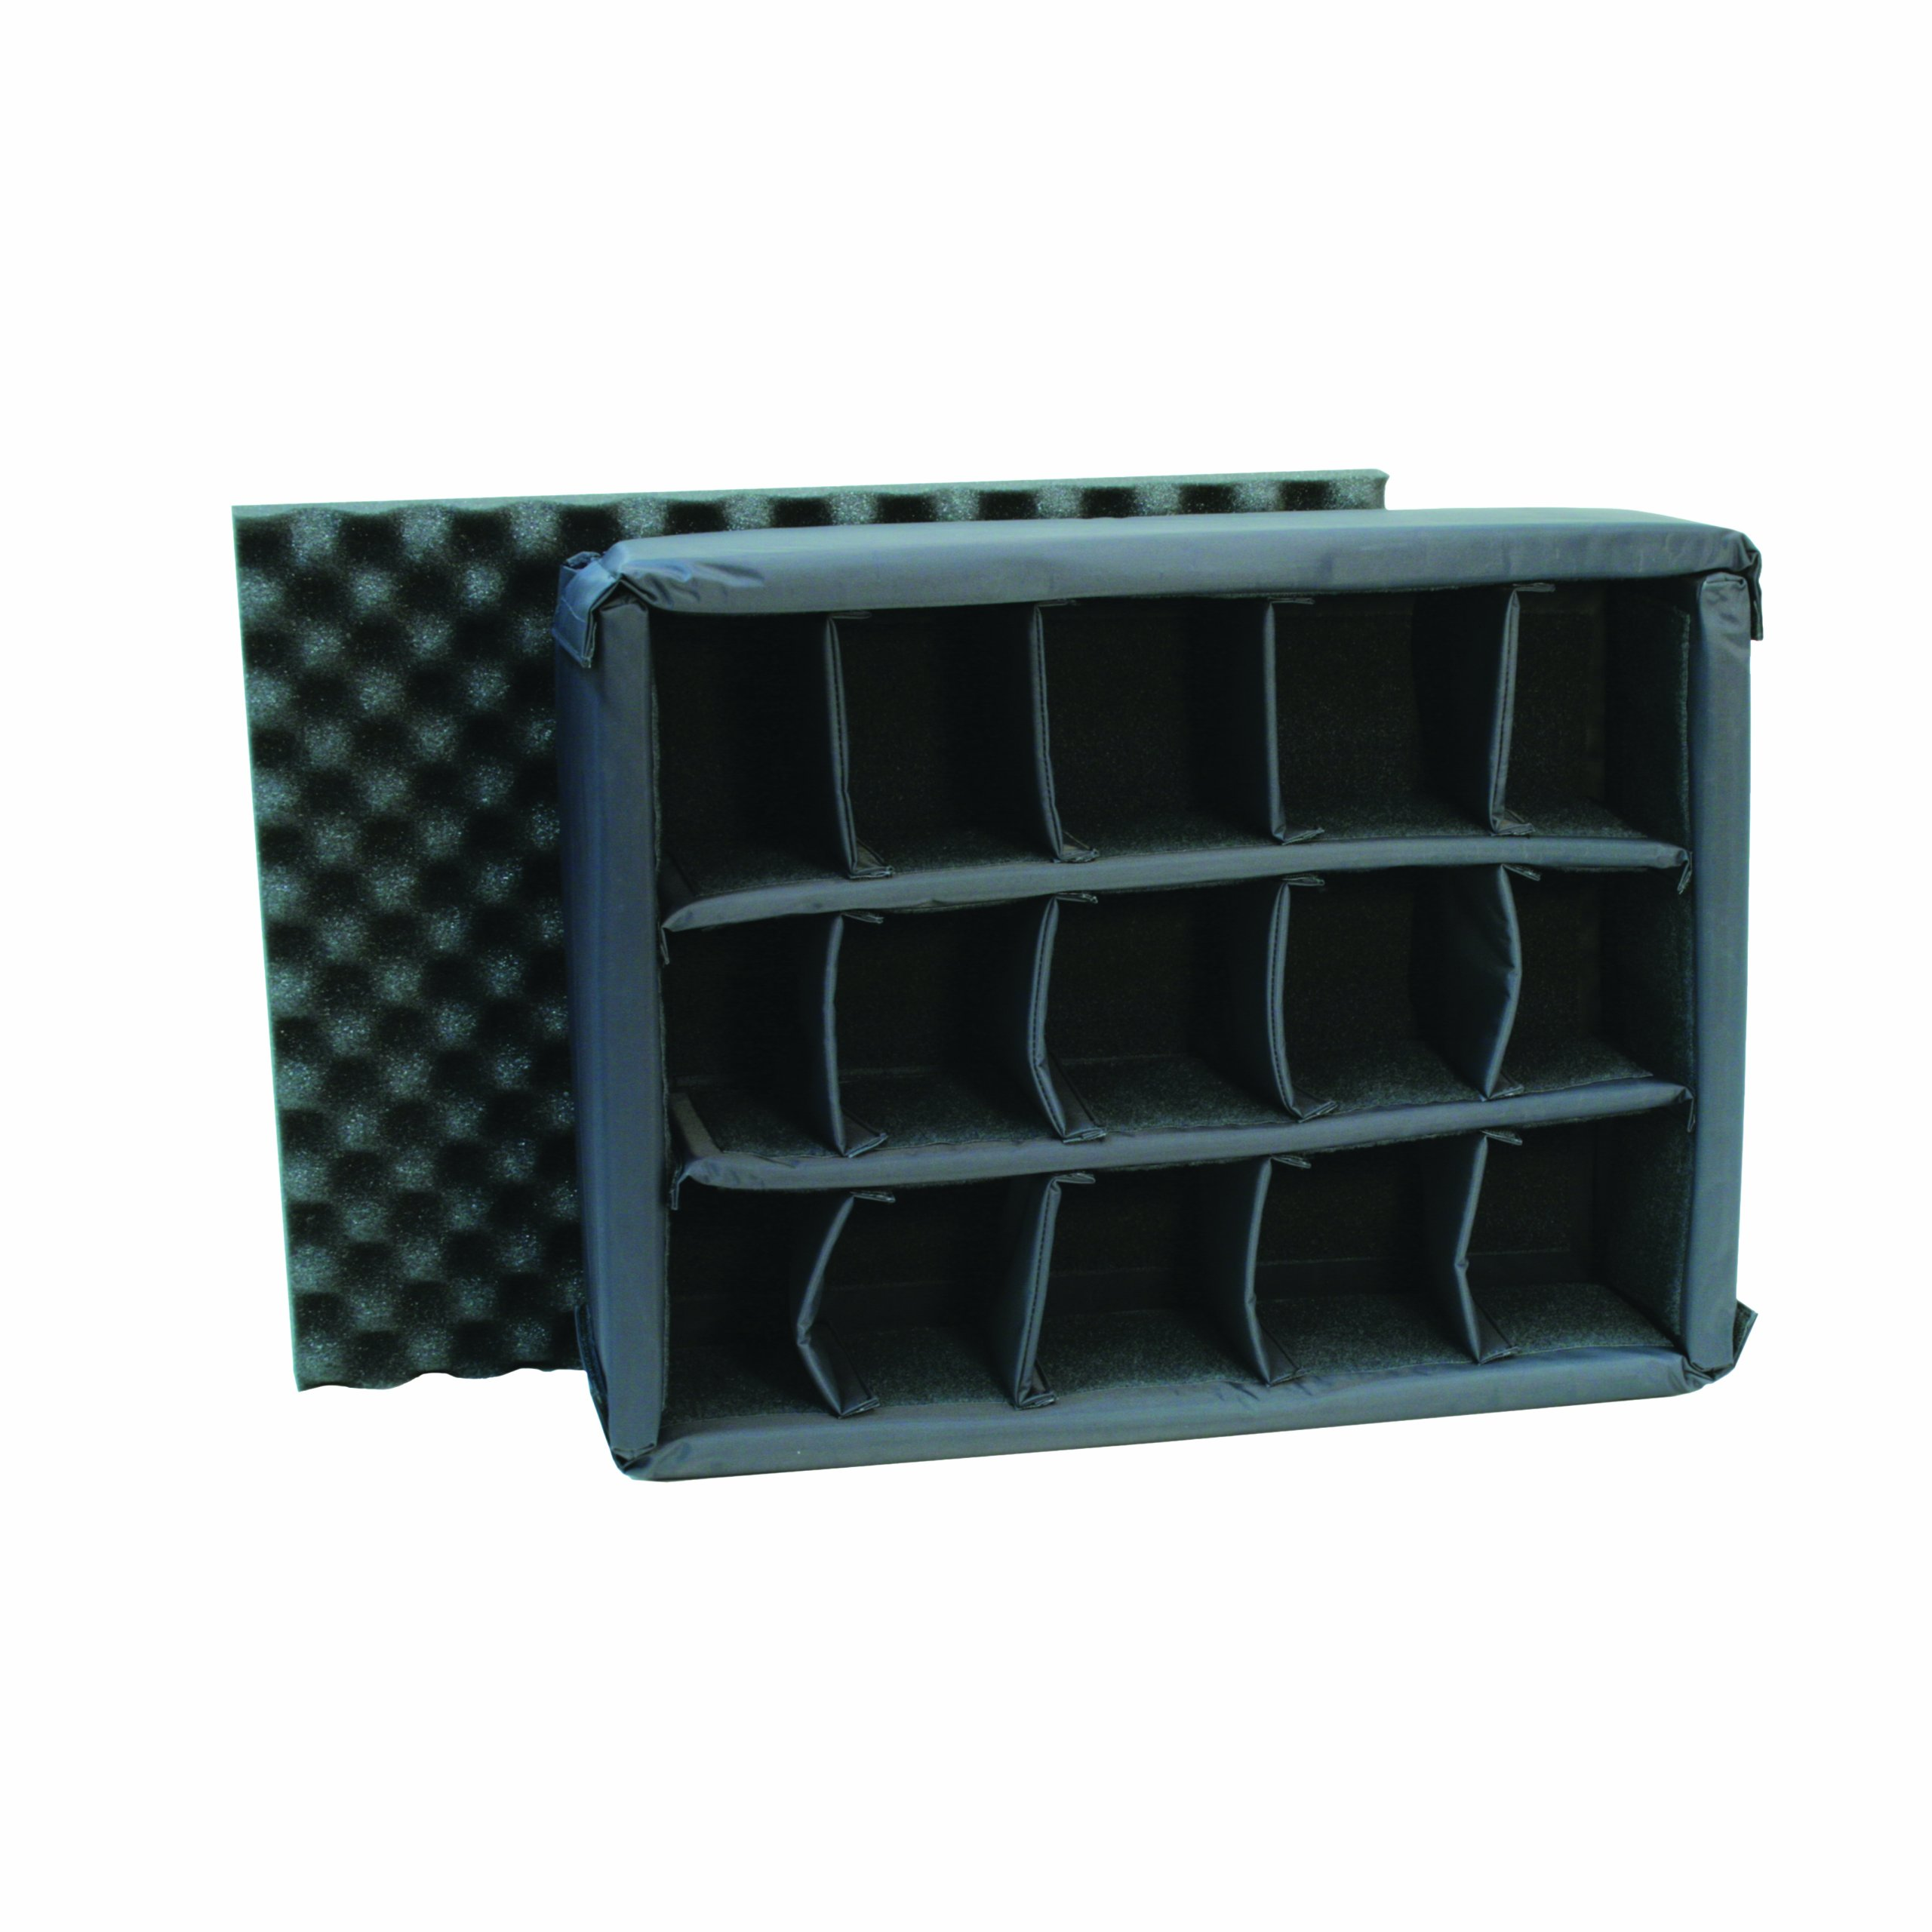 Padded Divider for 945 Nanuk Case by Nanuk